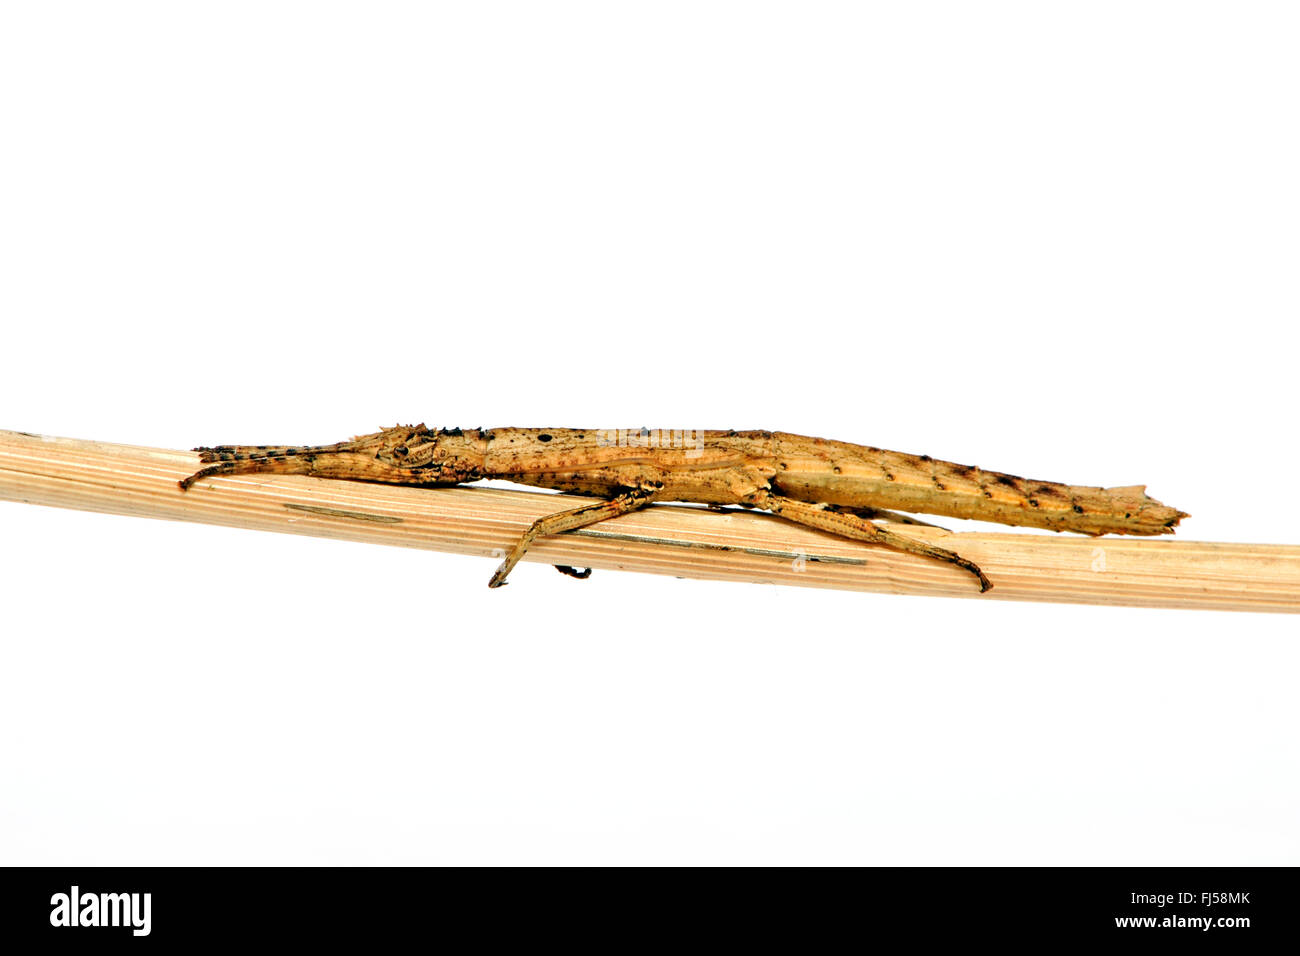 Small Cigar Stick Insect (Orestes mouhotii, Datames mouhotii, Pylaemenes mouhotii), on a twig, cut-out - Stock Image